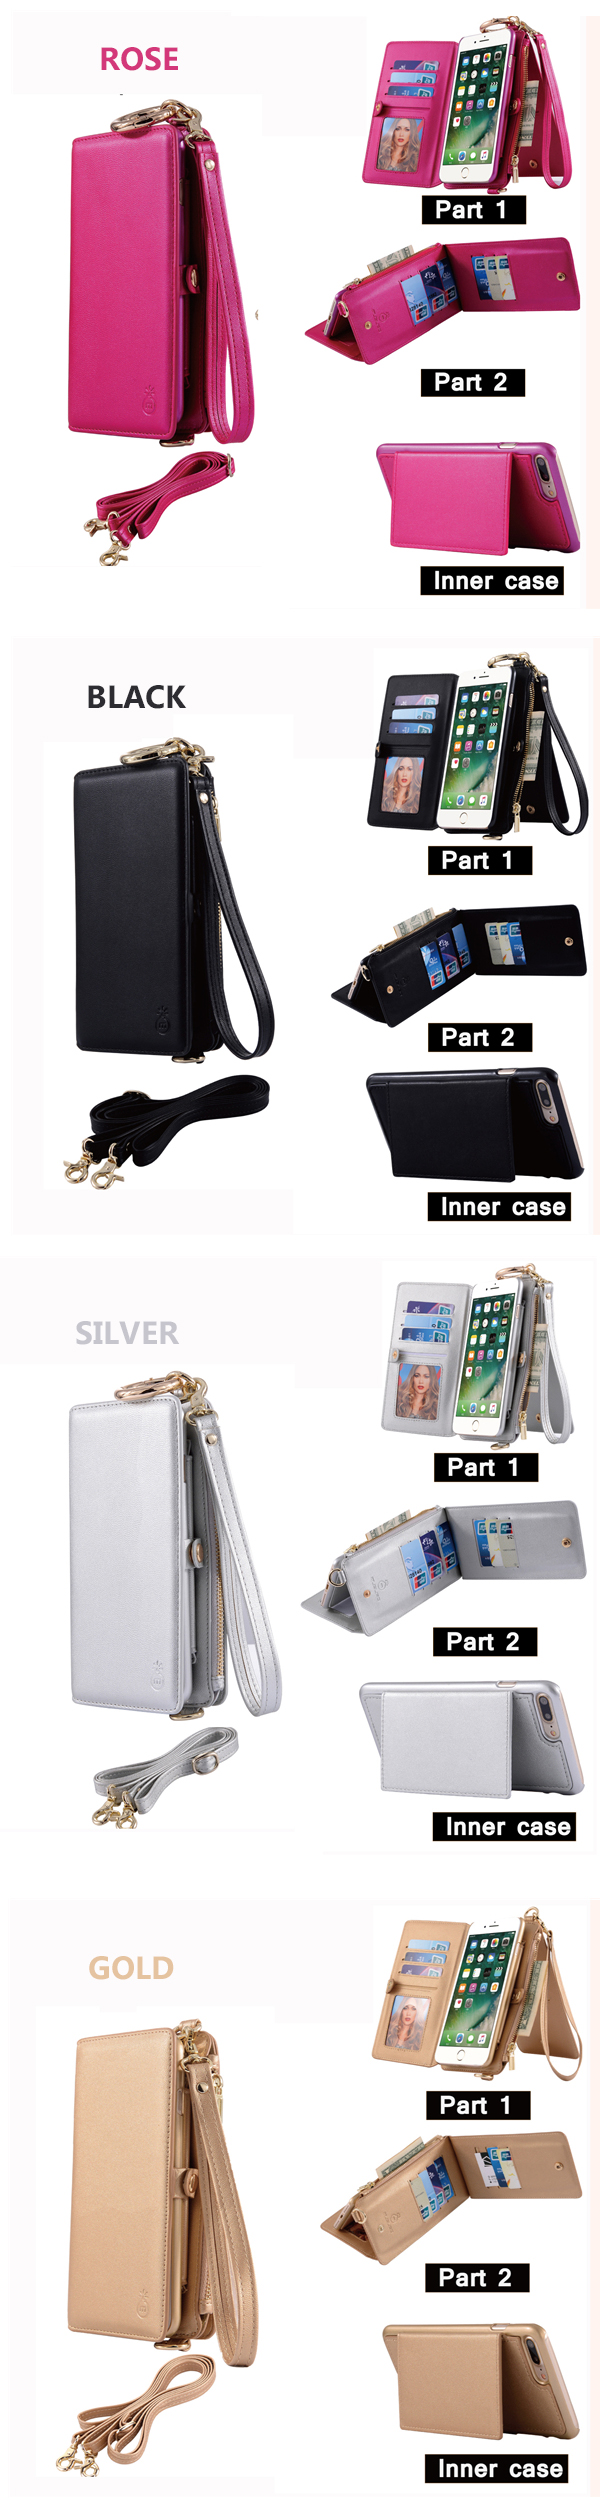 Genuine Leather Multifunctional iPhone6/6s/6 plus/6s plus Phone Case Wallet Card Holder Phone Bag